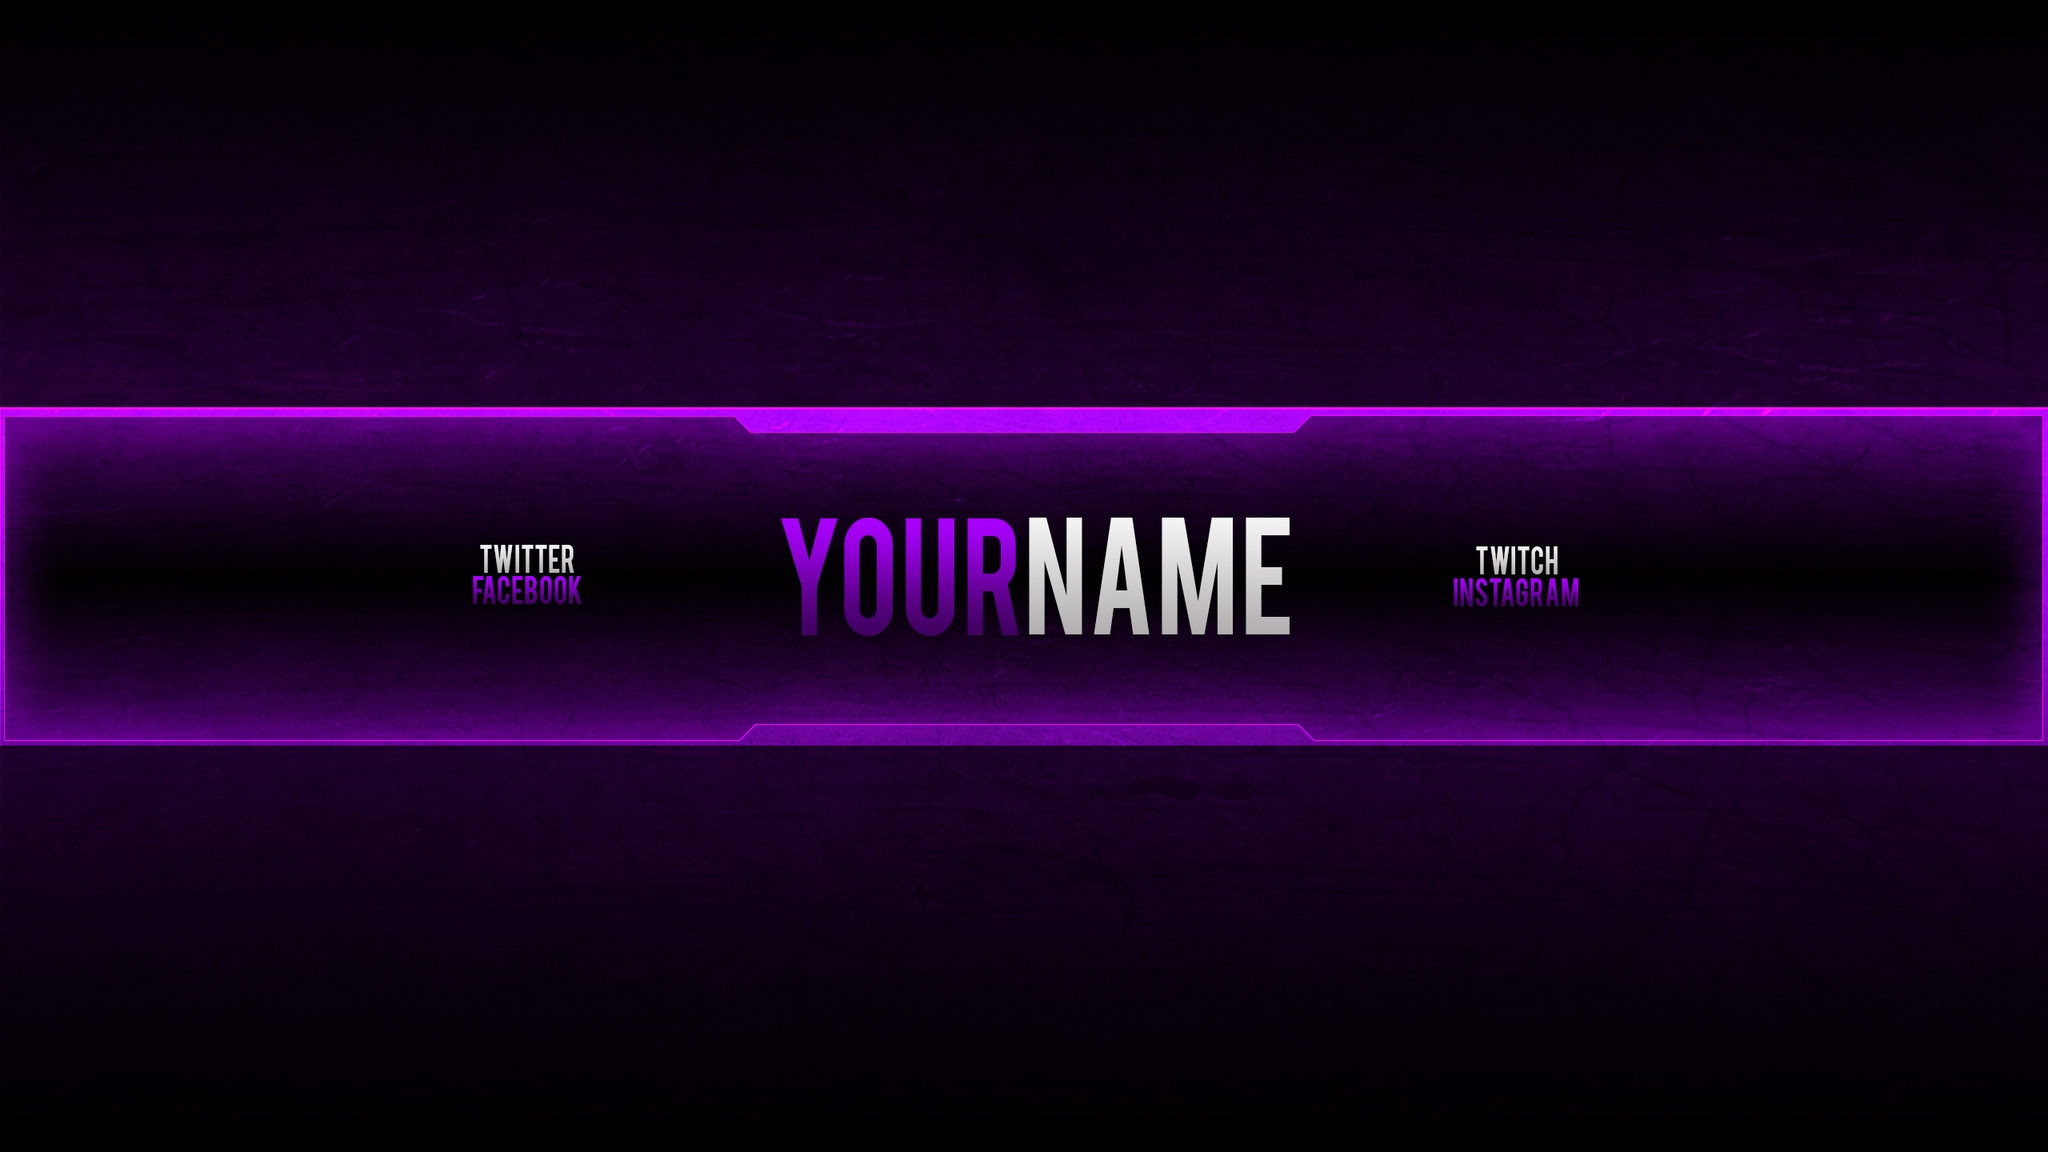 youtube banner 2048x1152 best template examples card from user